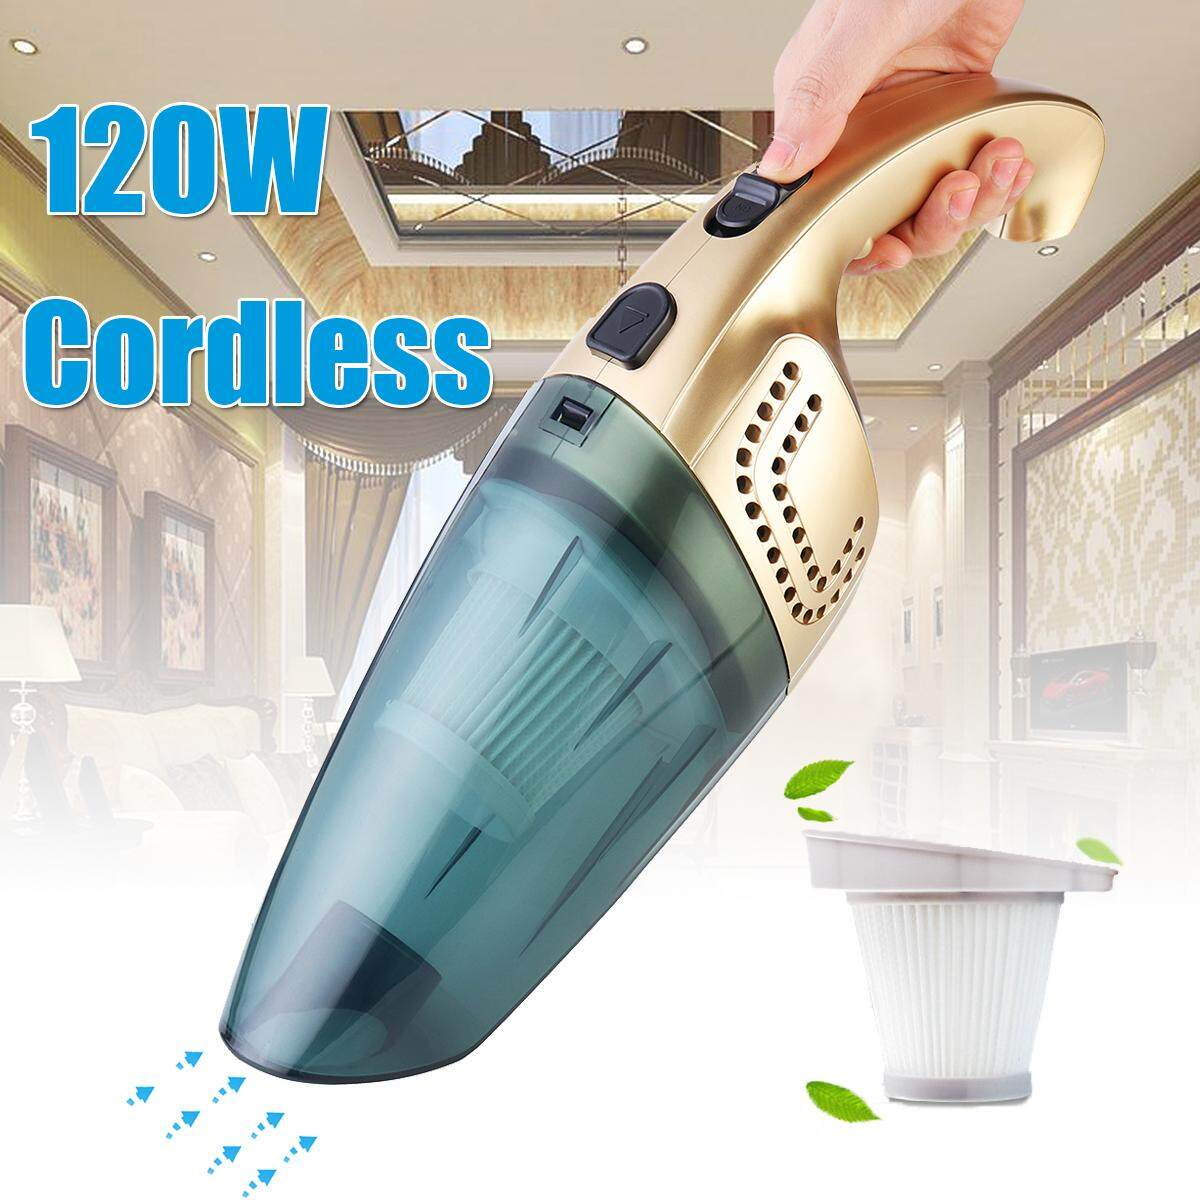 【Free Shipping + Flash Deal】120W Portable Cordless Vacuum Cleaner Rechargeable Car Home Use Dry/Wet 2600mAh